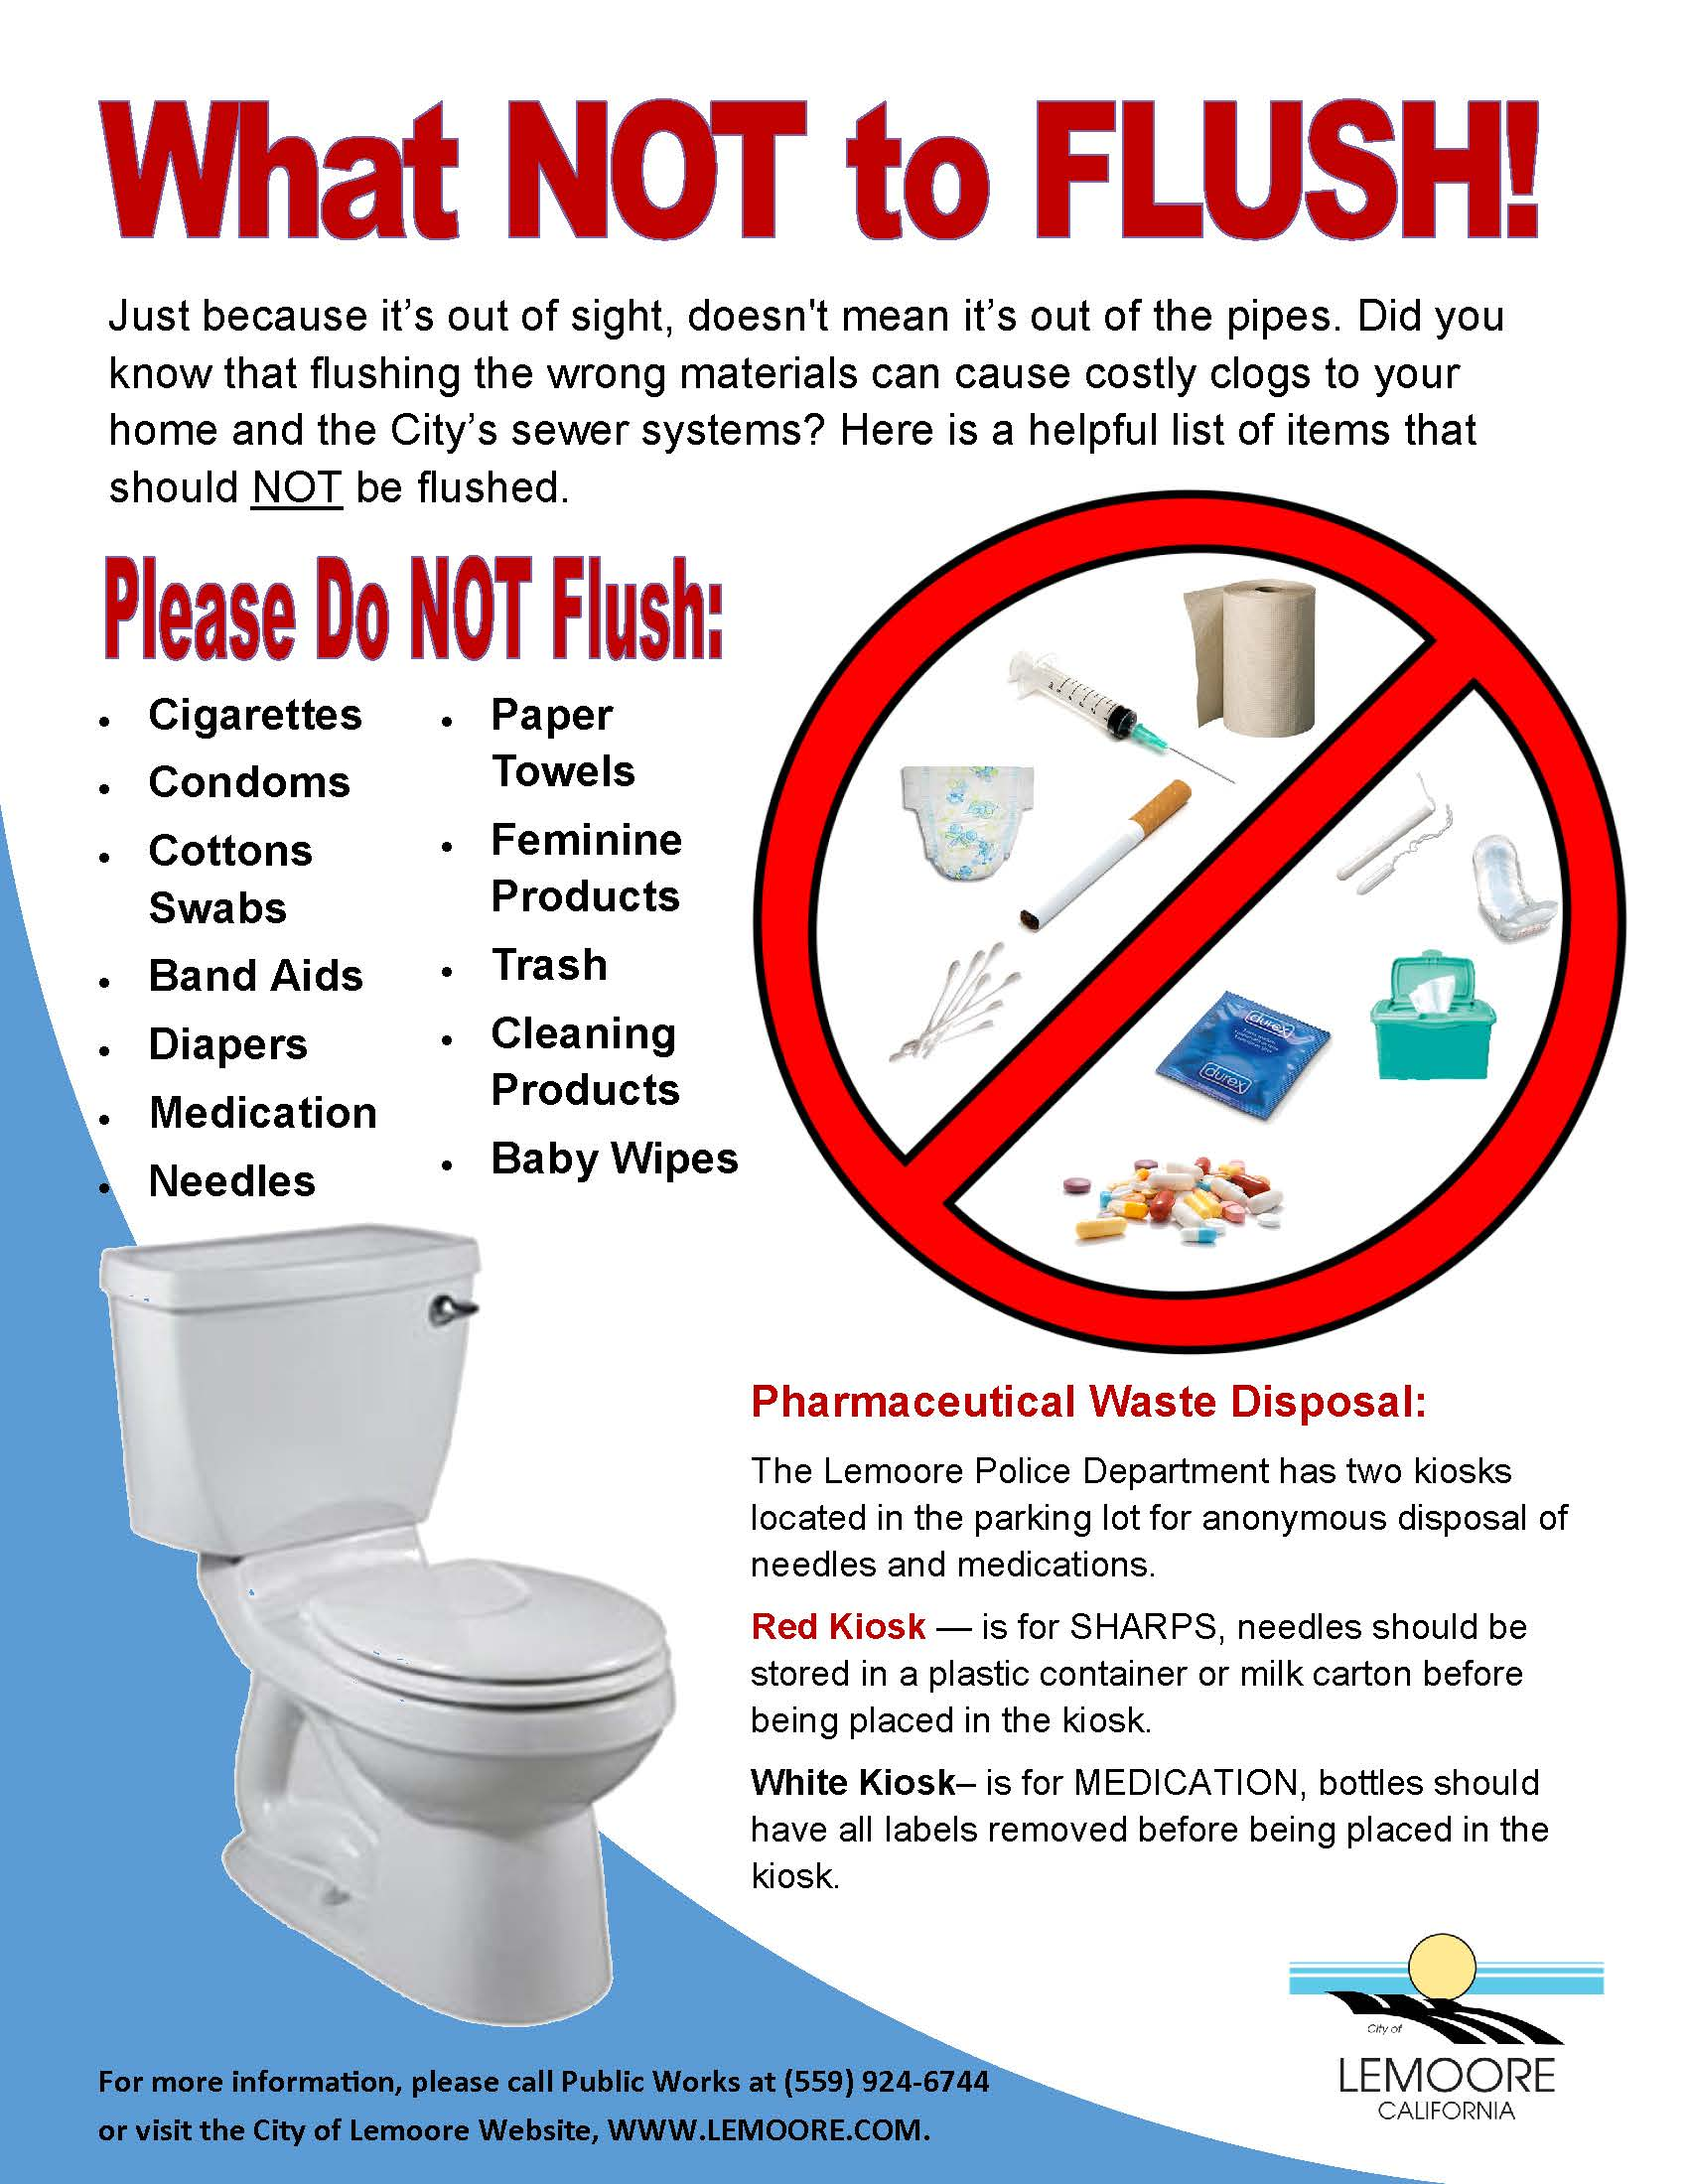 What Not To Do When Getting Your Makeup Done: What NOT To Flush!